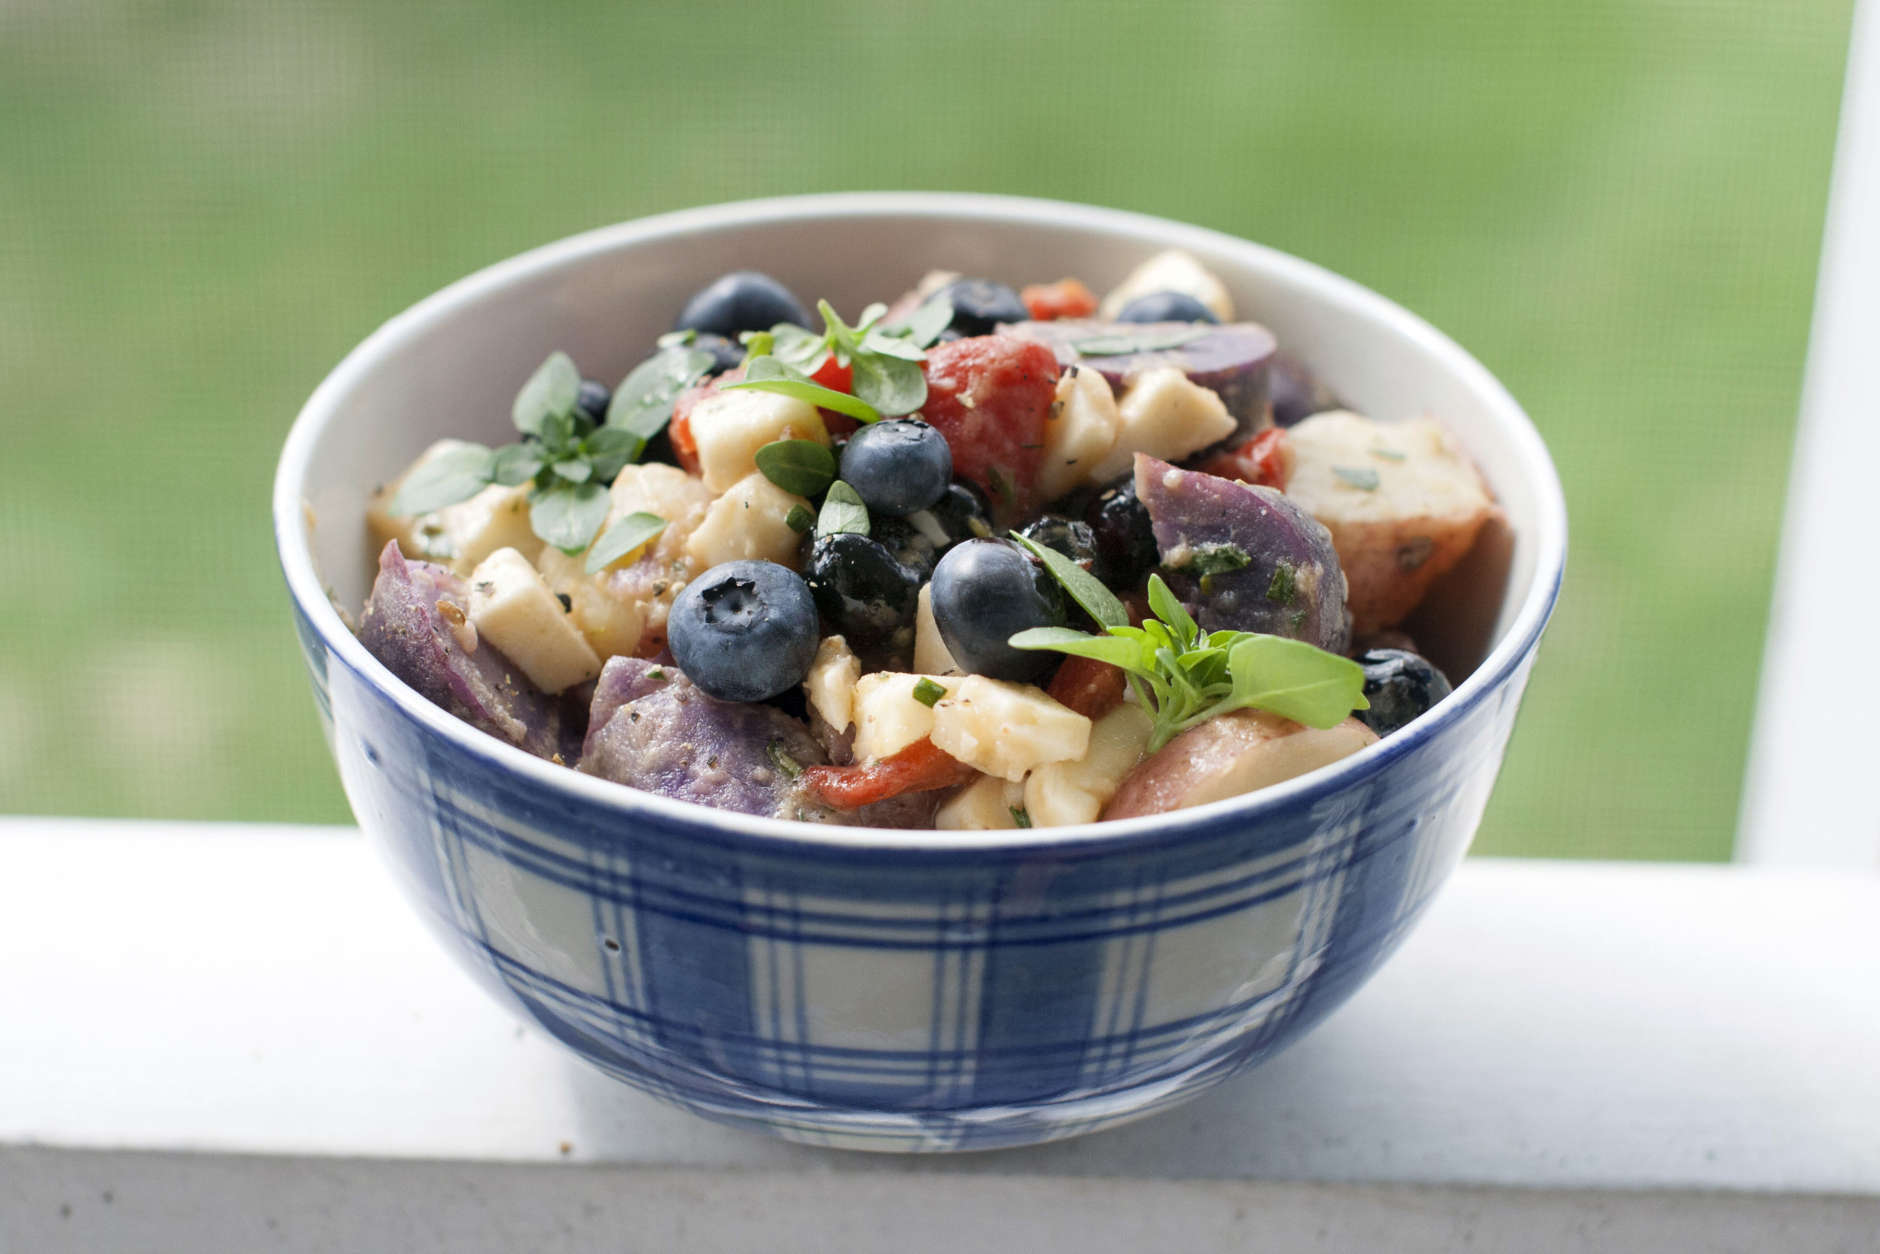 This May 5, 2014 photo shows red, white and blue potato salad in Concord, N.H. Red and purple potatoes, roasted red peppers, cubes of white goat cheese, and several cups of blueberries provide patriotic colors that reflect the spirit of the Fourth of July holiday.  (AP Photo/Matthew Mead)